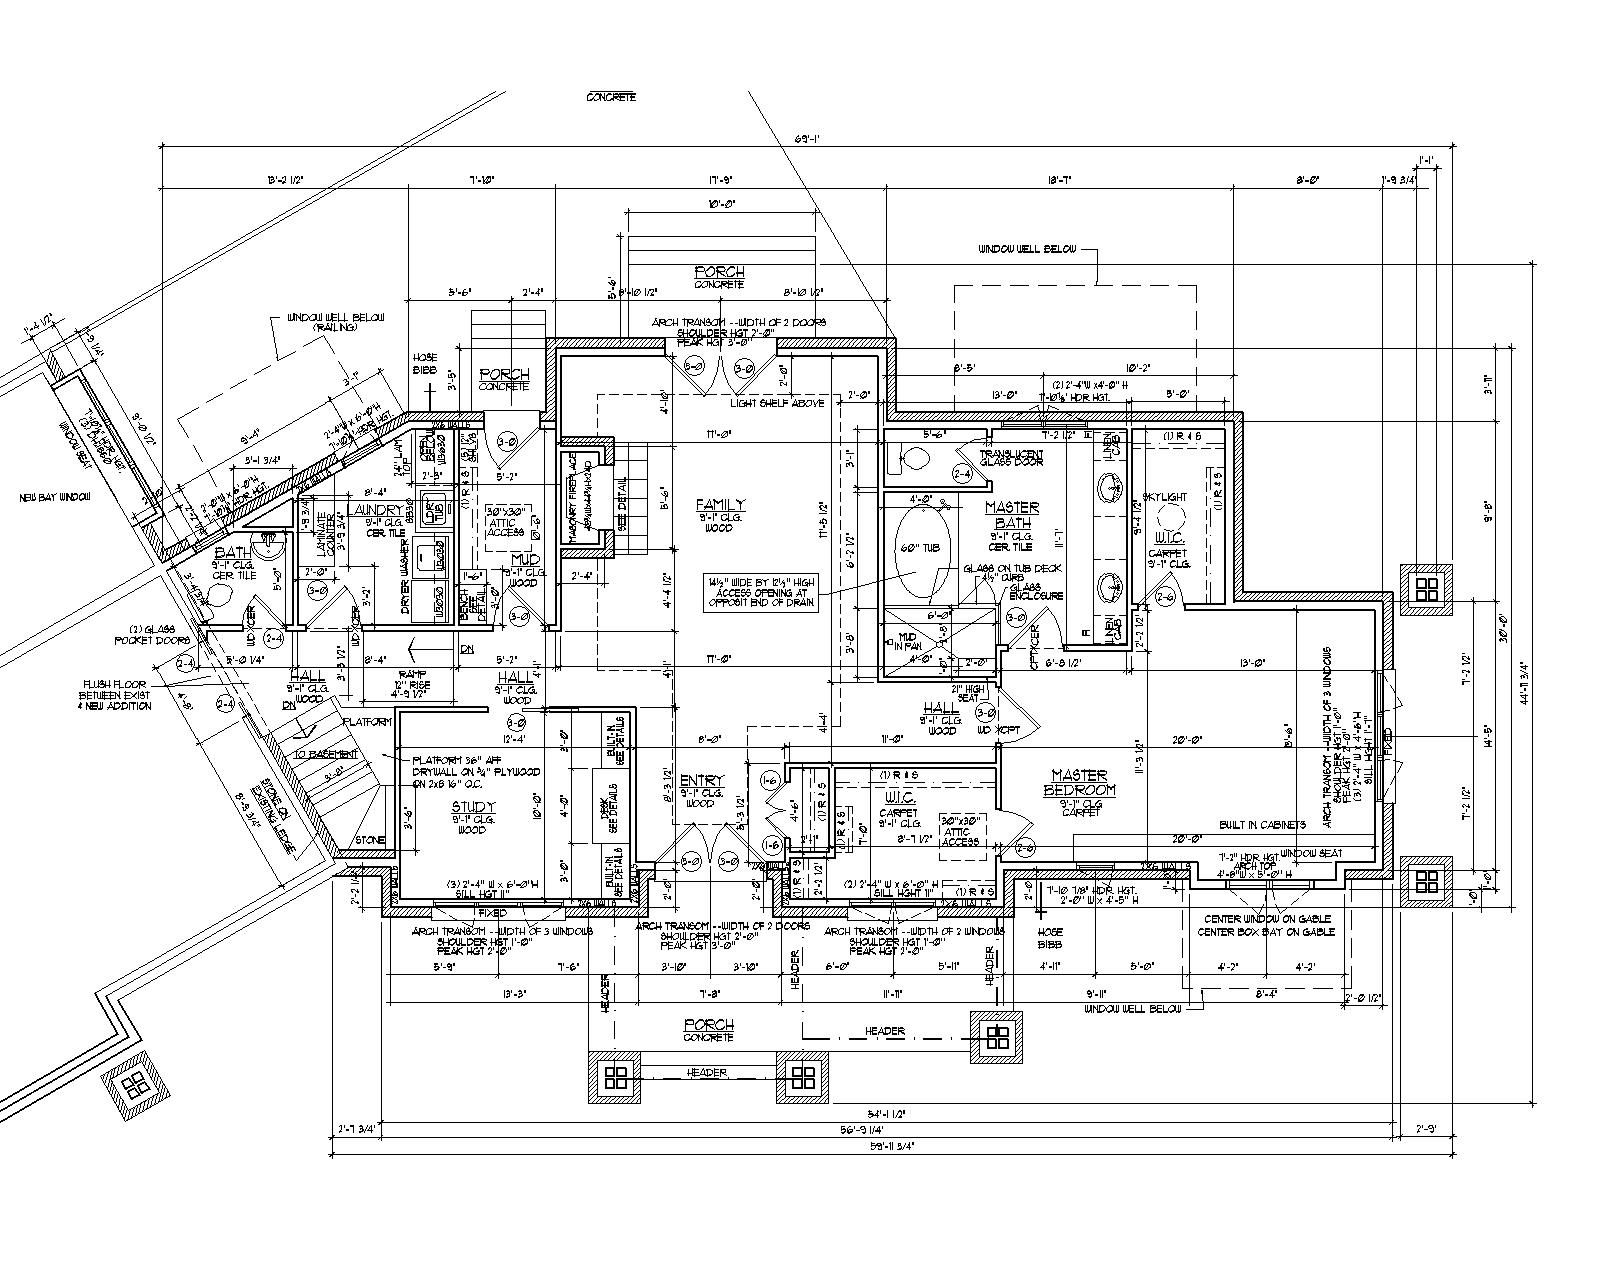 2d autocad house plans residential building drawings cad for Draw plans free